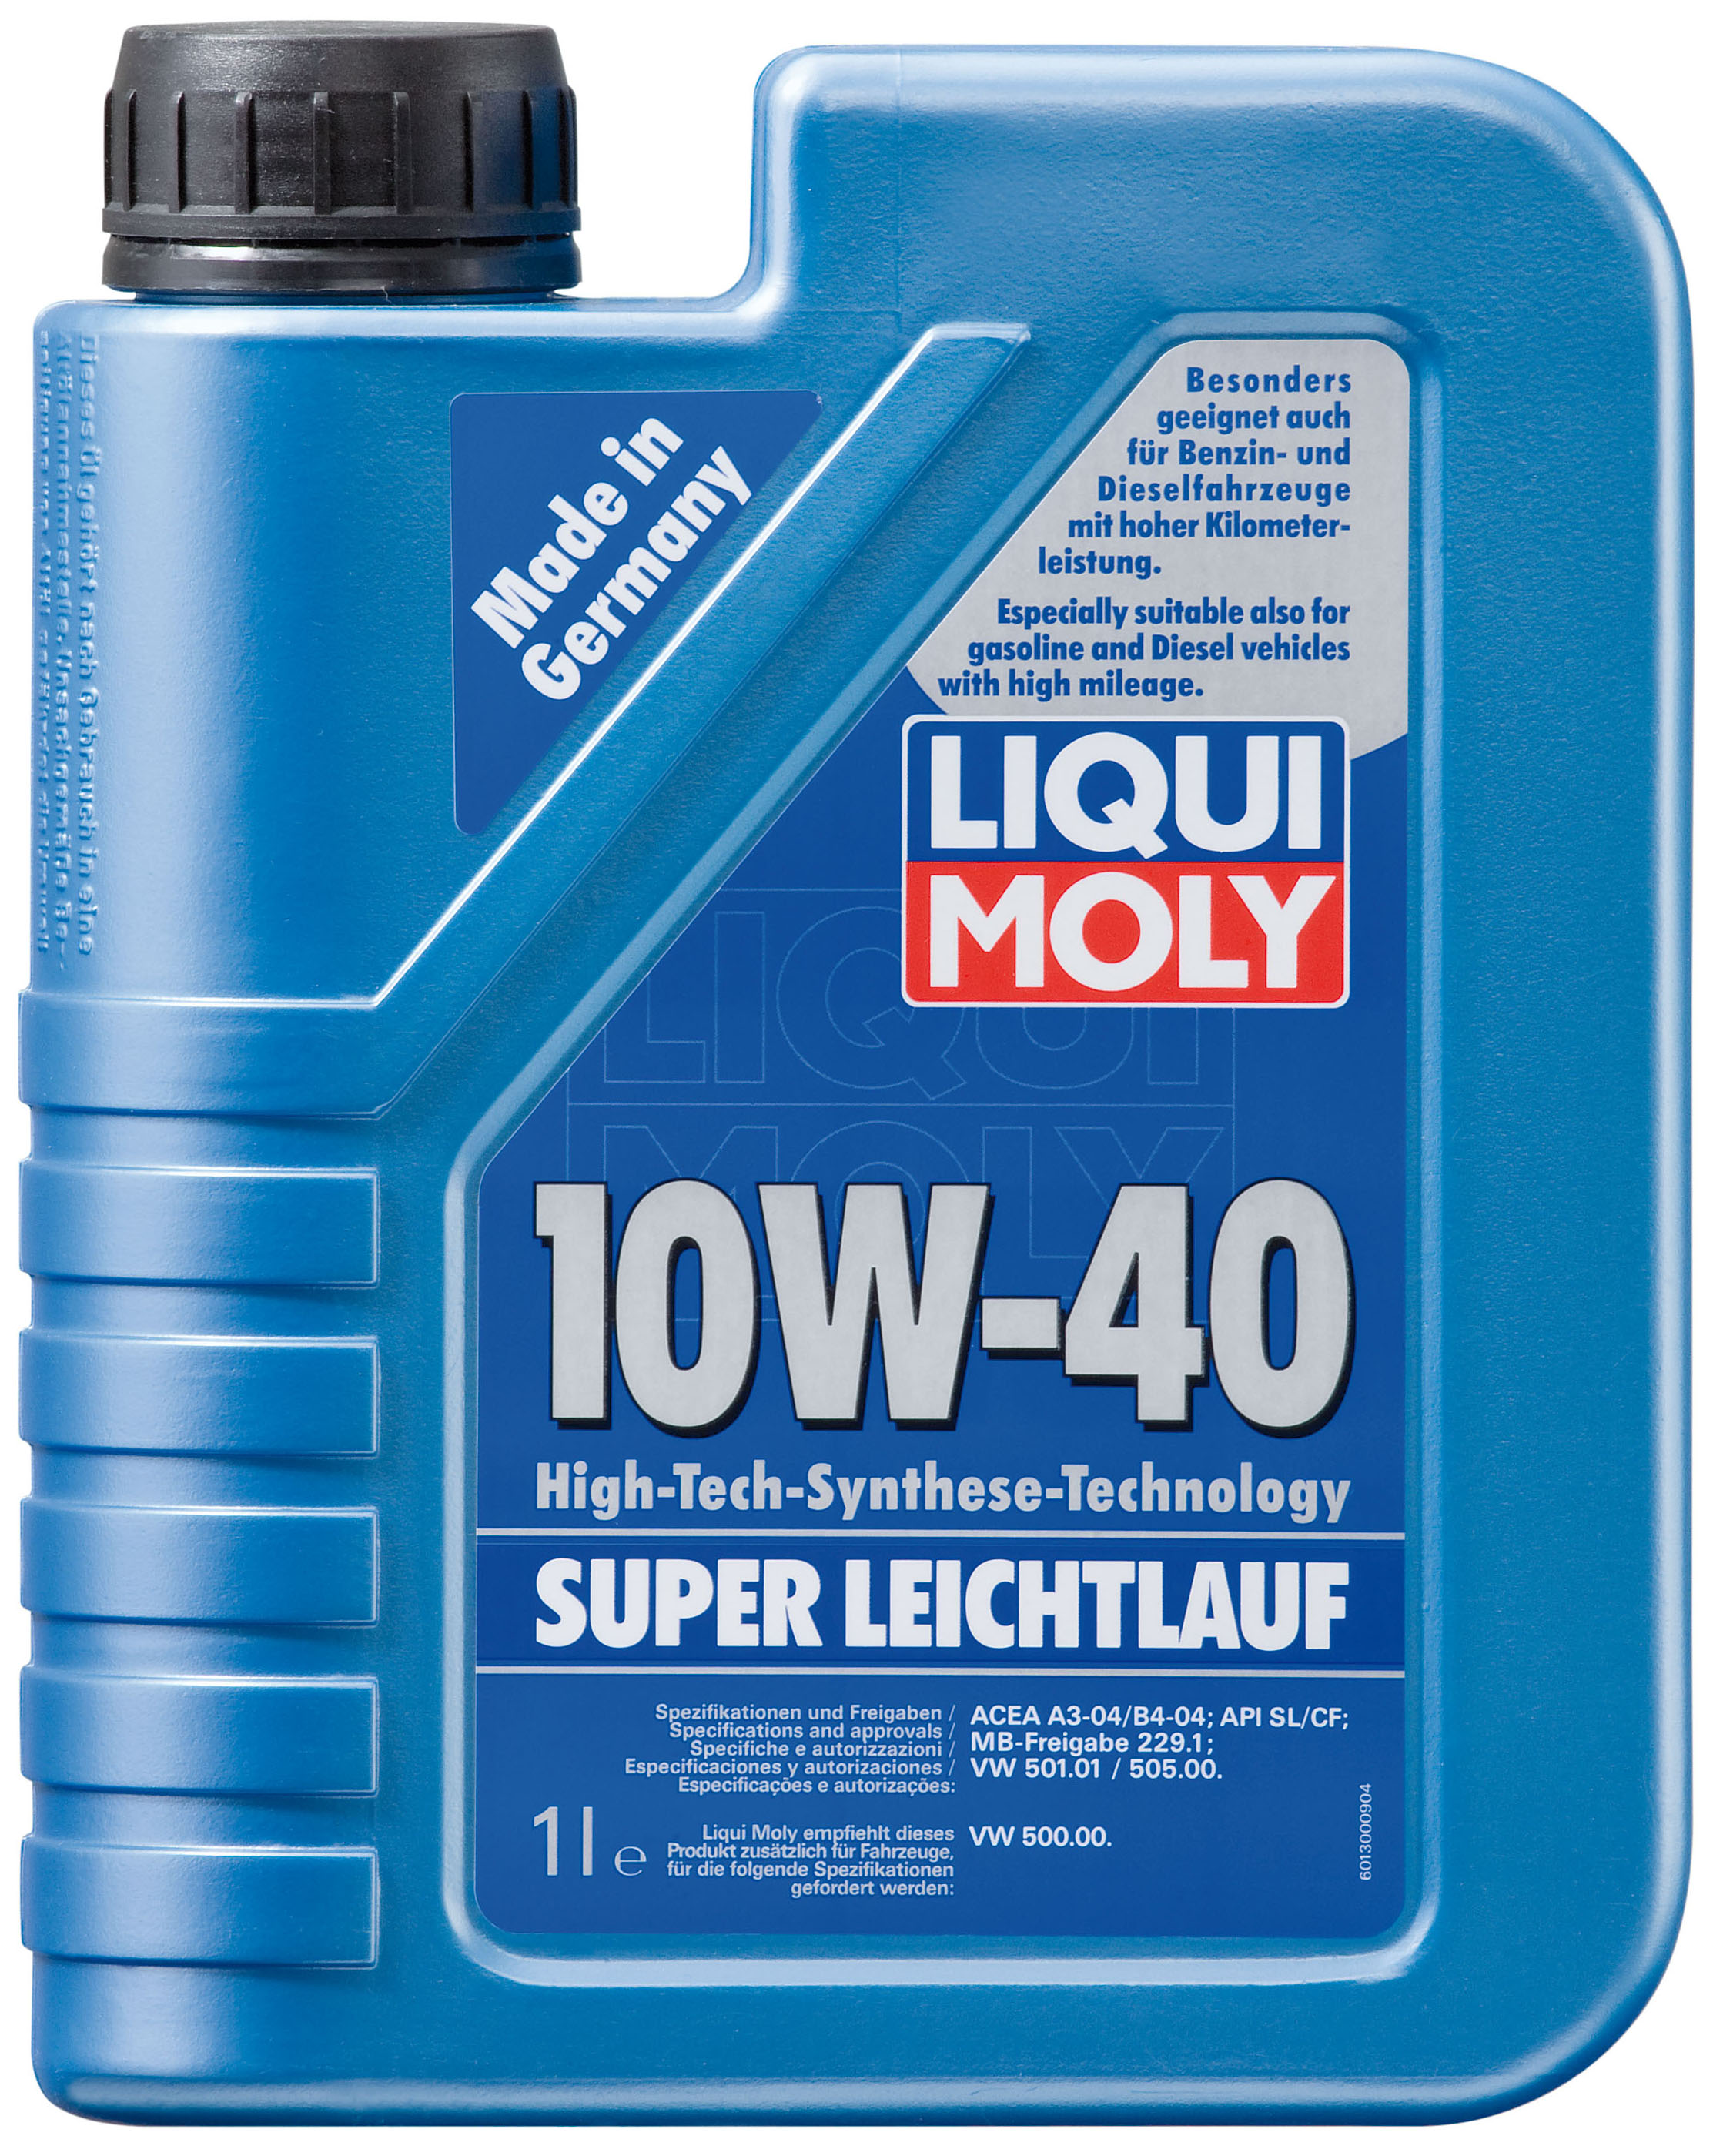 liqui moly super leichtlauf 10w 40. Black Bedroom Furniture Sets. Home Design Ideas